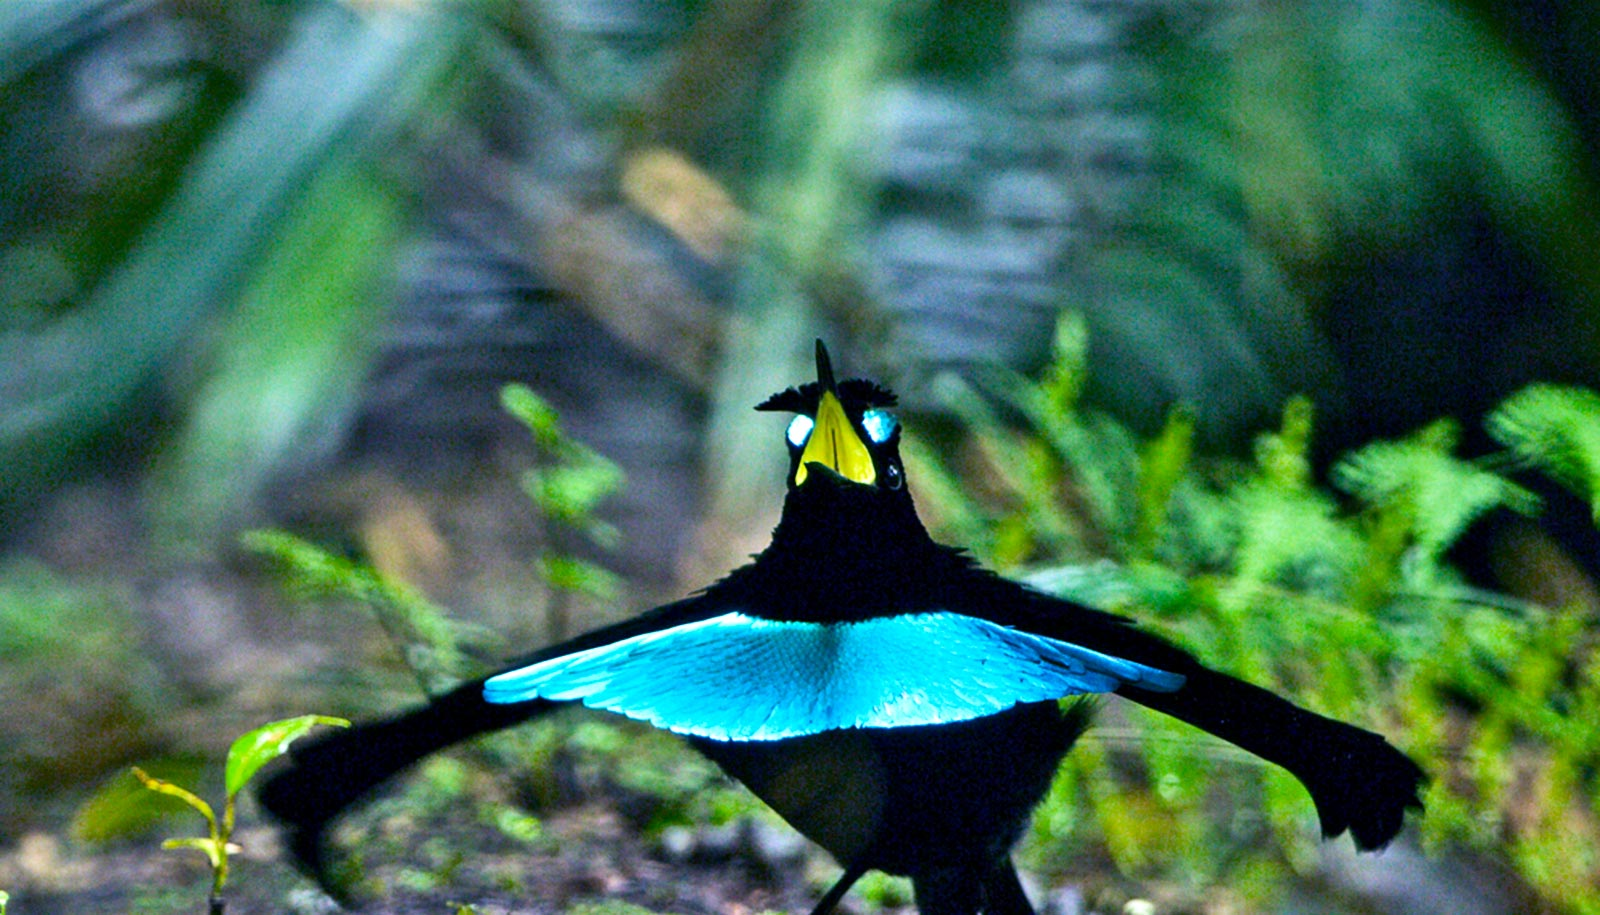 New bird of paradise has killer dance moves   Futurity